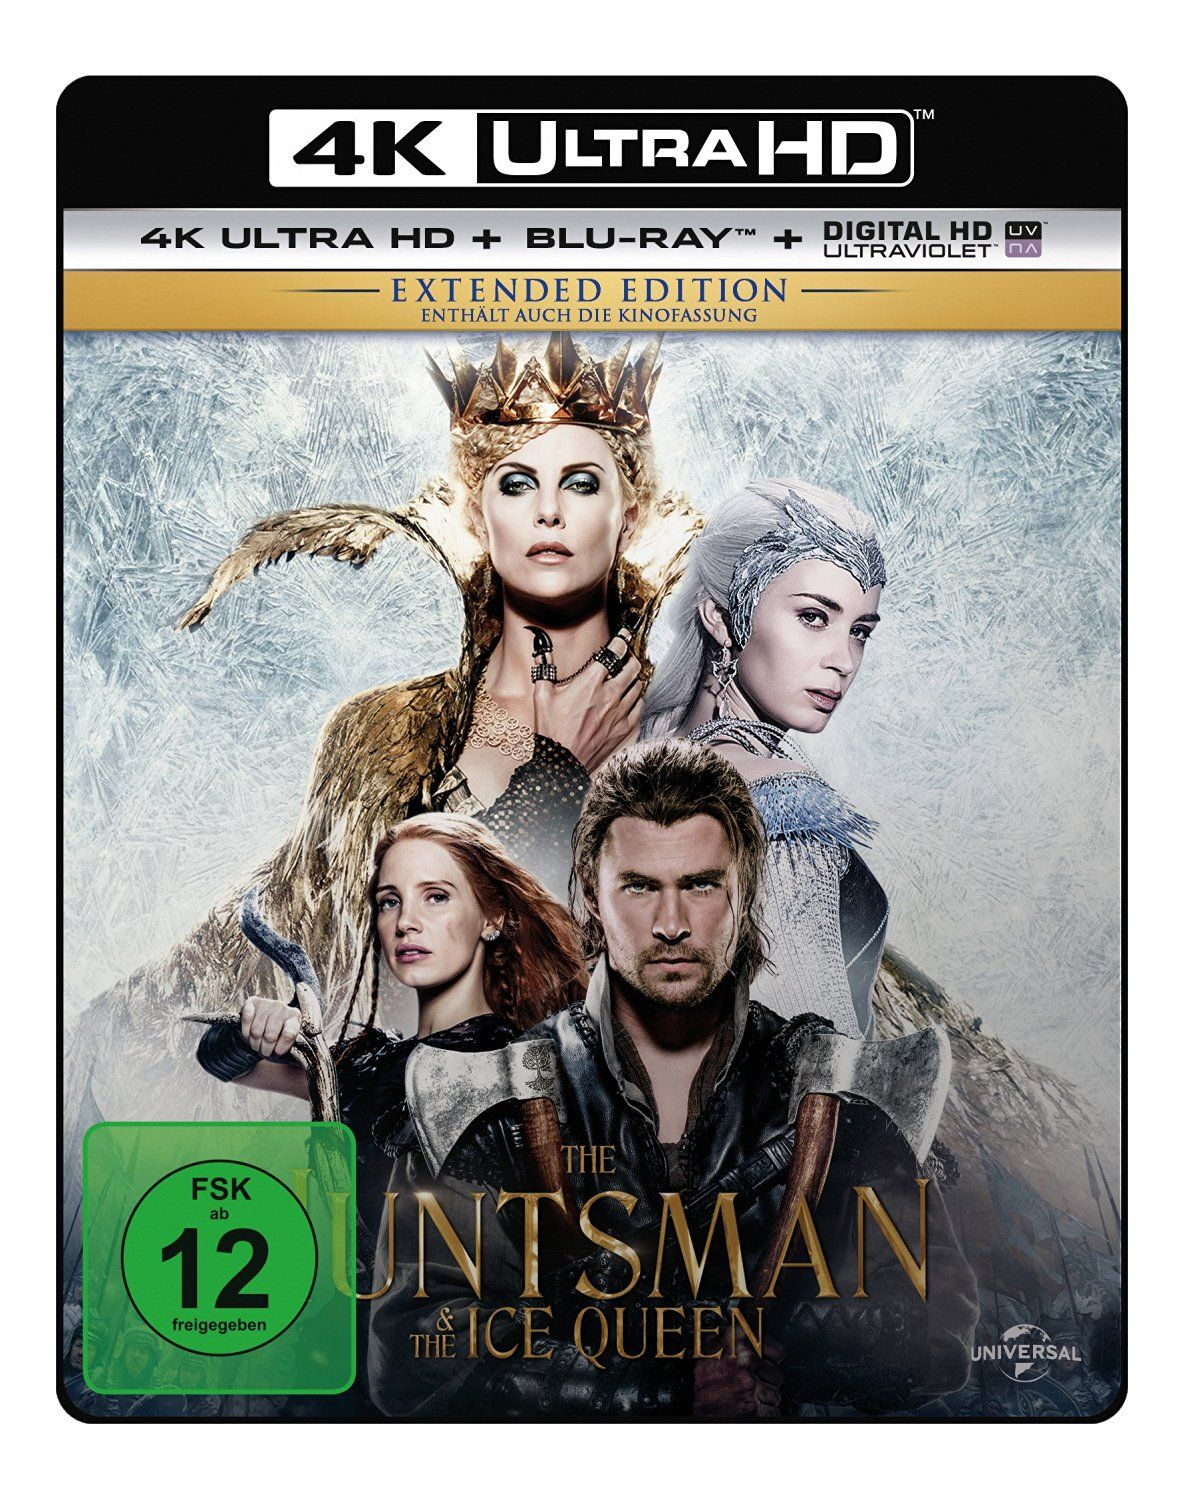 Huntsman & the Ice Queen, The (Kinofassung & Extended Version) (2 Discs) (UHD BLURAY + BLURAY)